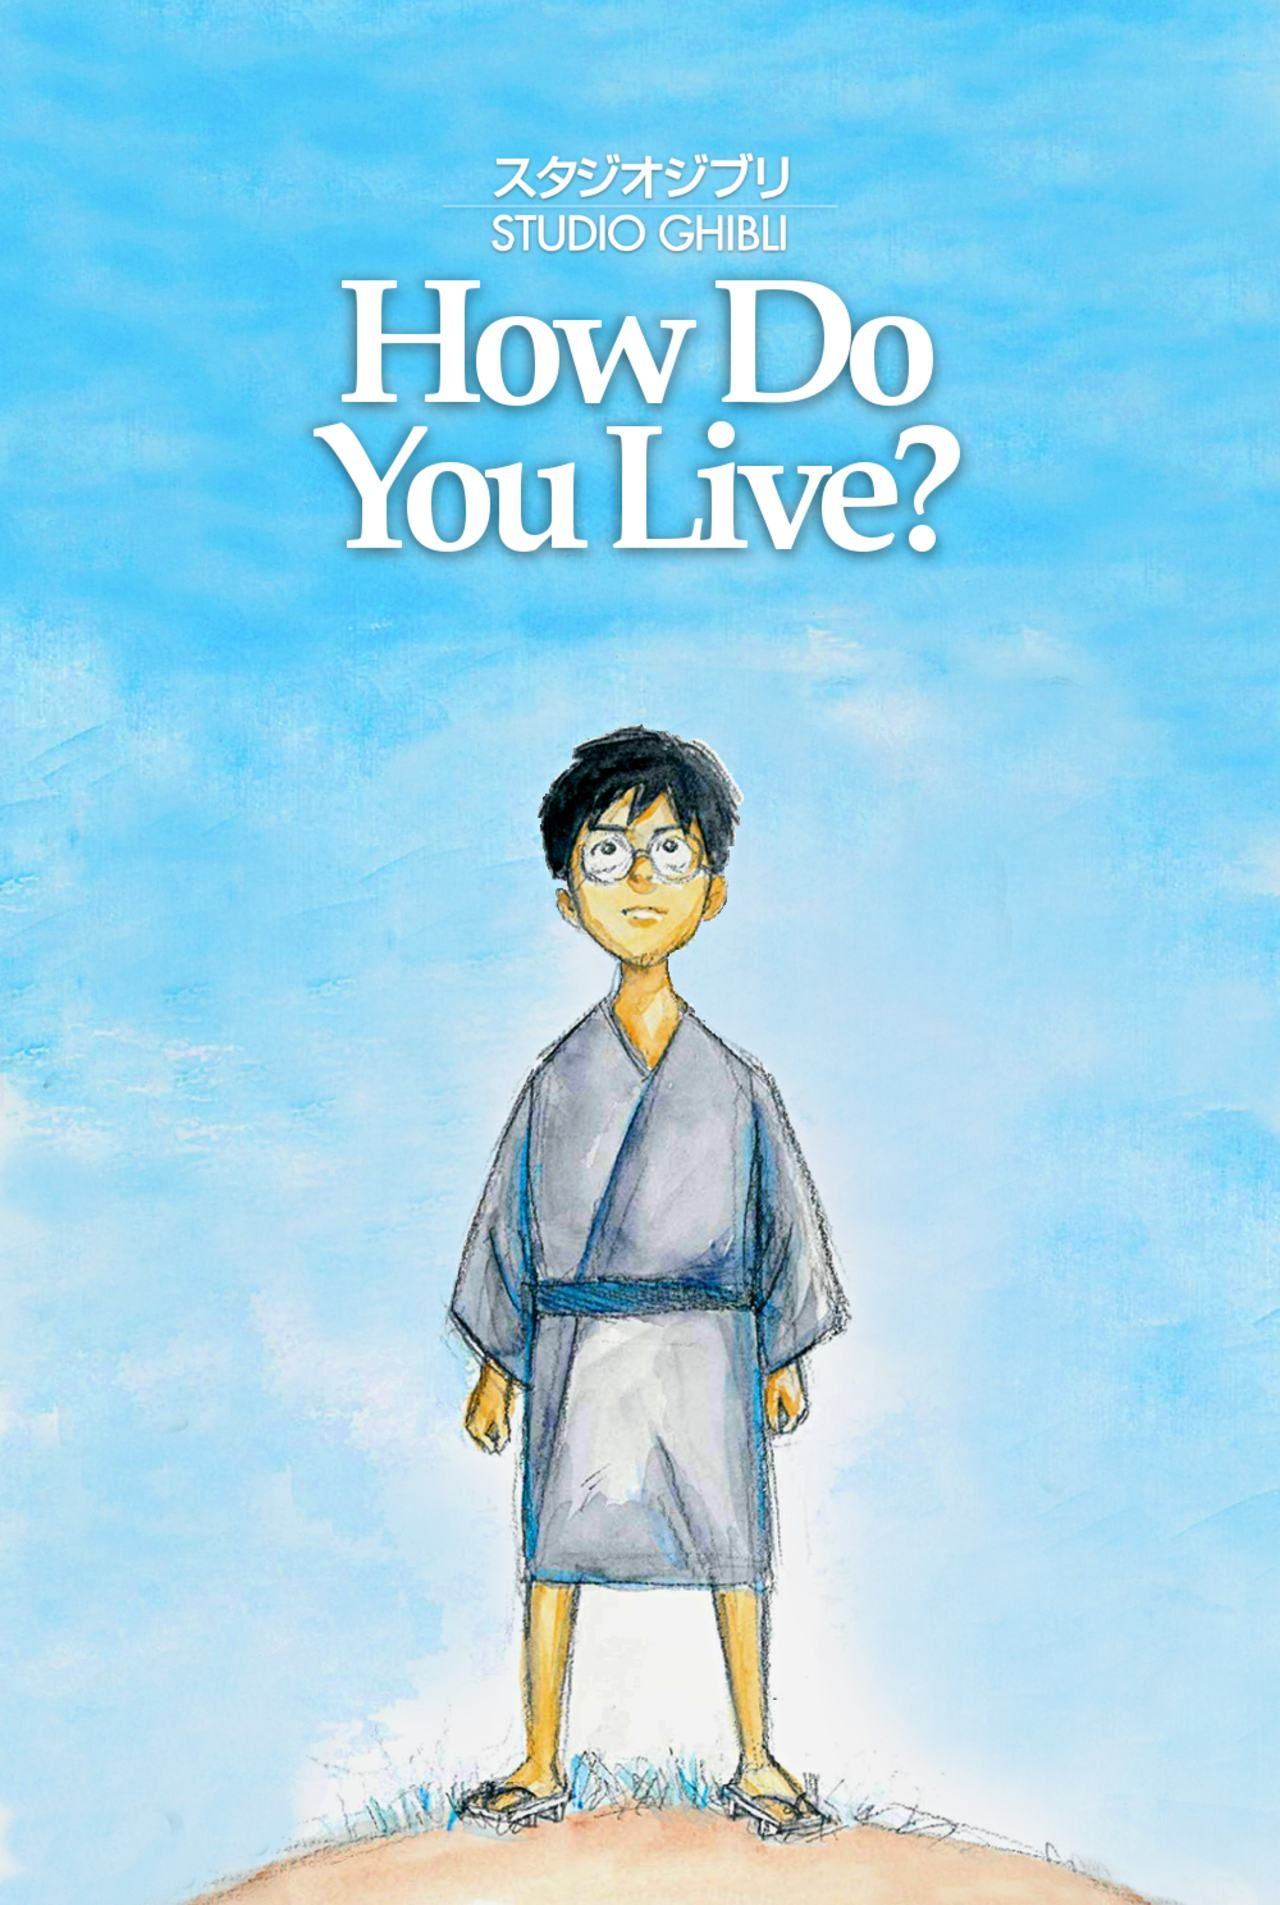 Póster Película How Do You Live Hayao Miyasaki Studio Ghibli